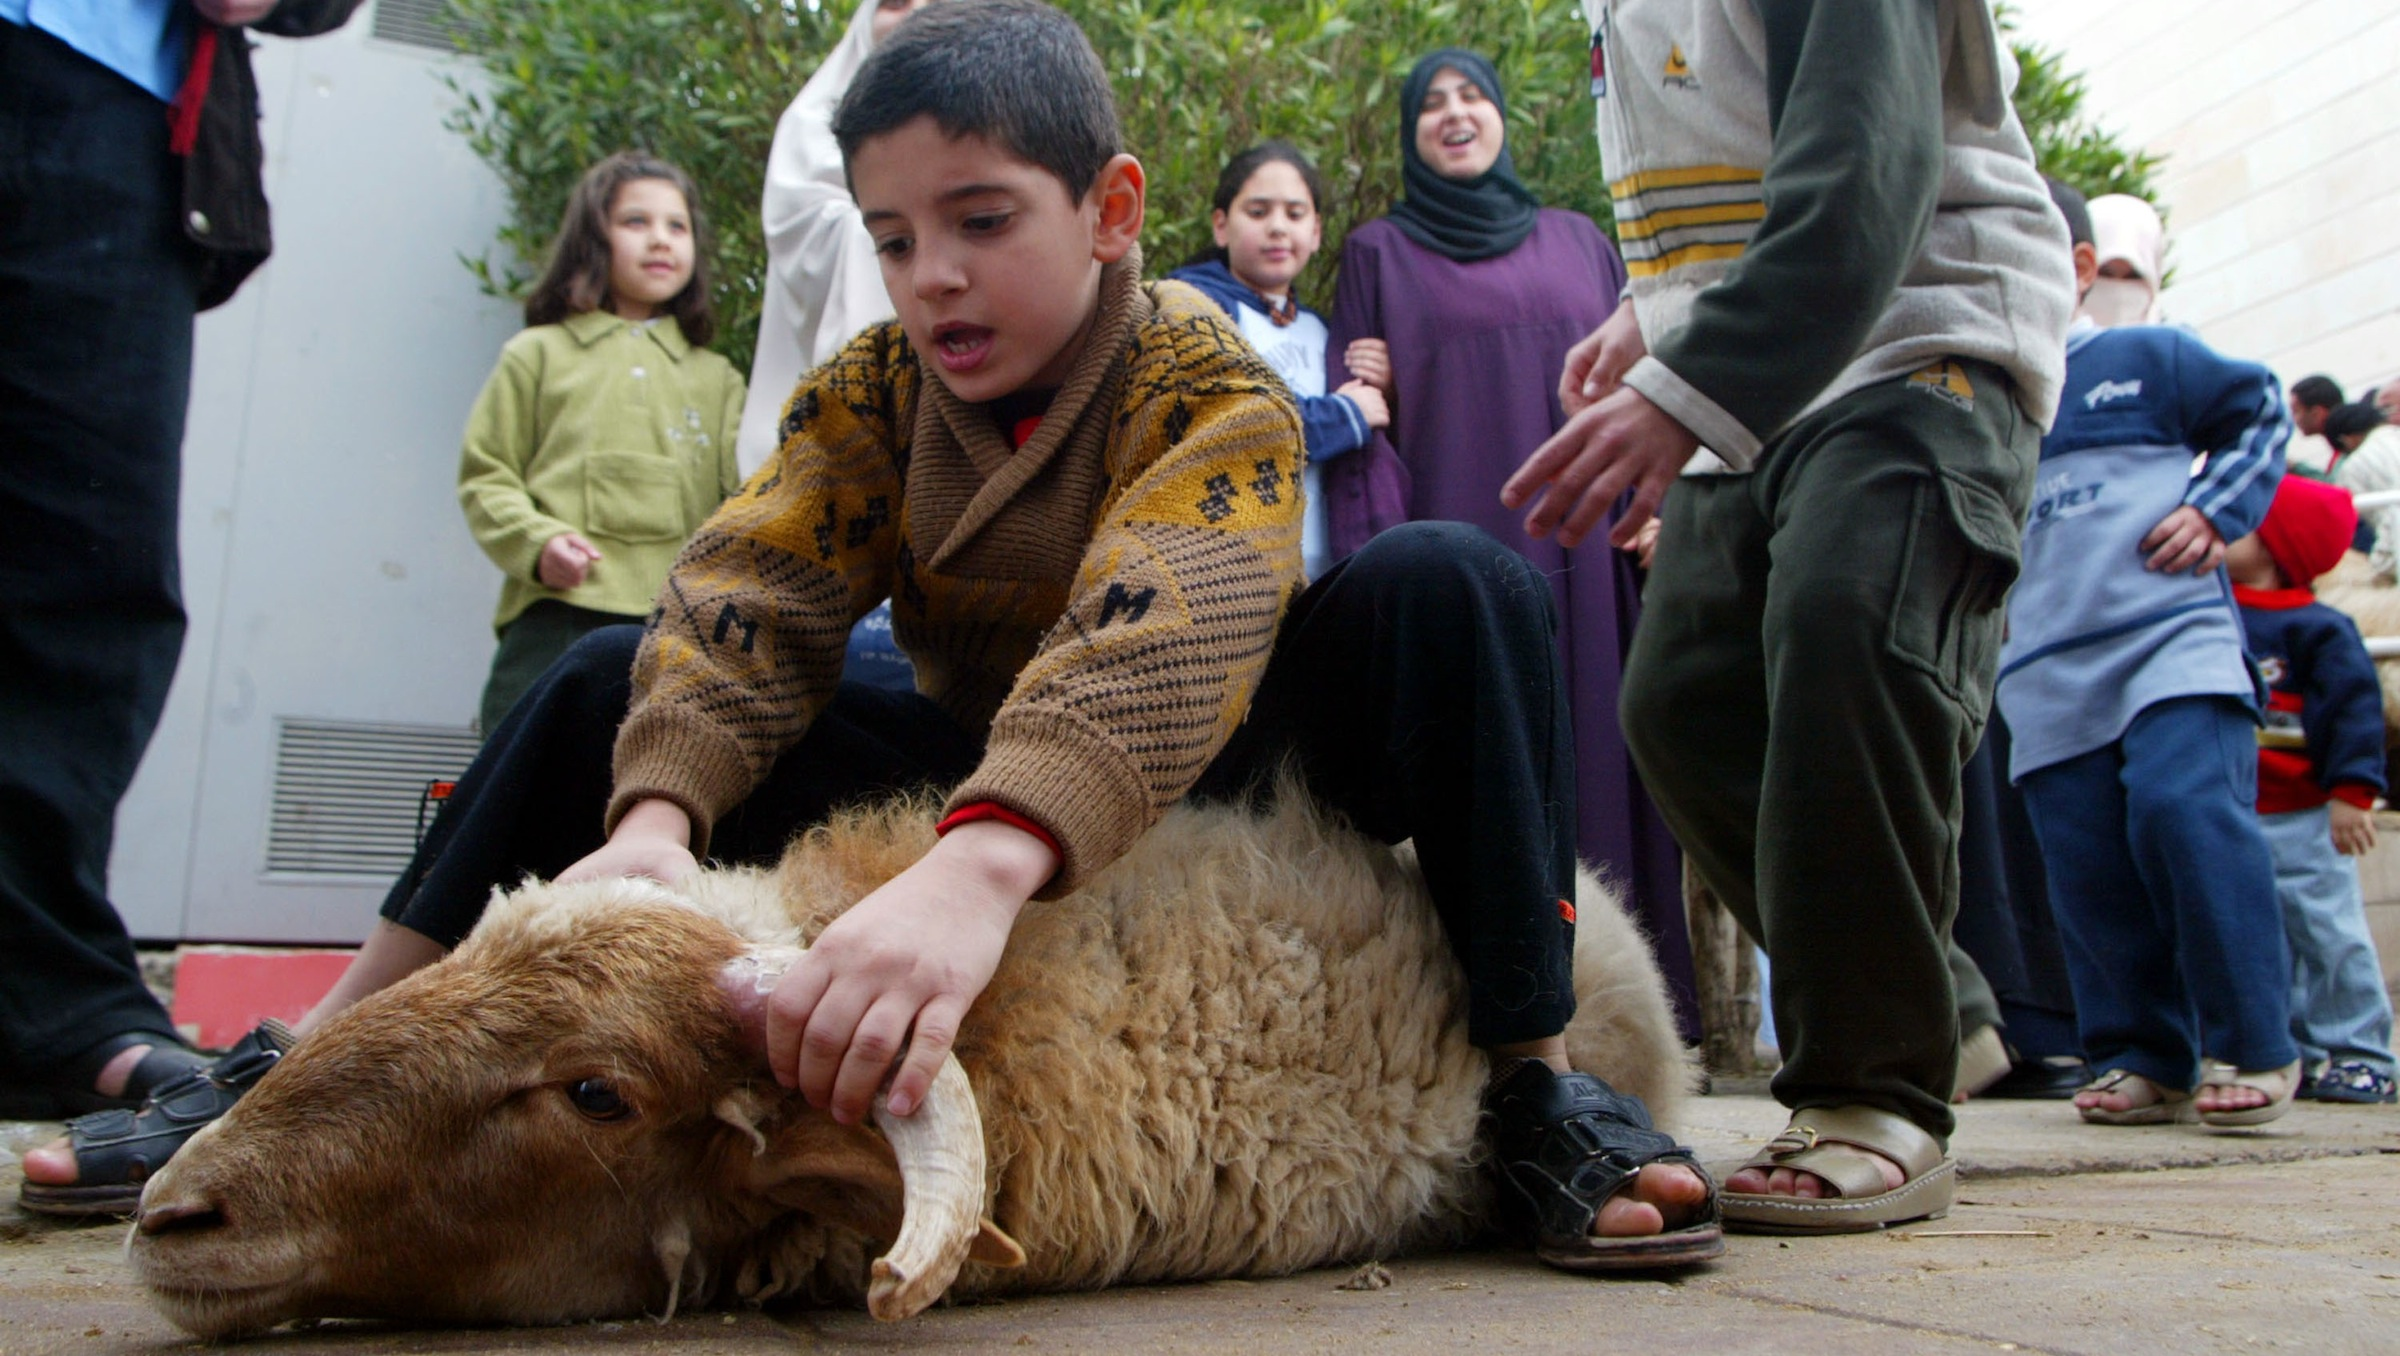 KUWAIT CITY, KUWAIT - FEBRUARY 11:  A child tries to control a sheep that he is bringing to the slaughter house for butchering for the traditional Eid El Adha meal February 11, 2003 in Kuwait City, Kuwait. The Eid El Adha, also known as the Feast of Sacrifice, is a major Muslim four-day holiday that falls at the end of the annual Mecca pilgrimage.  (Photo by Joe Raedle/Getty Images)